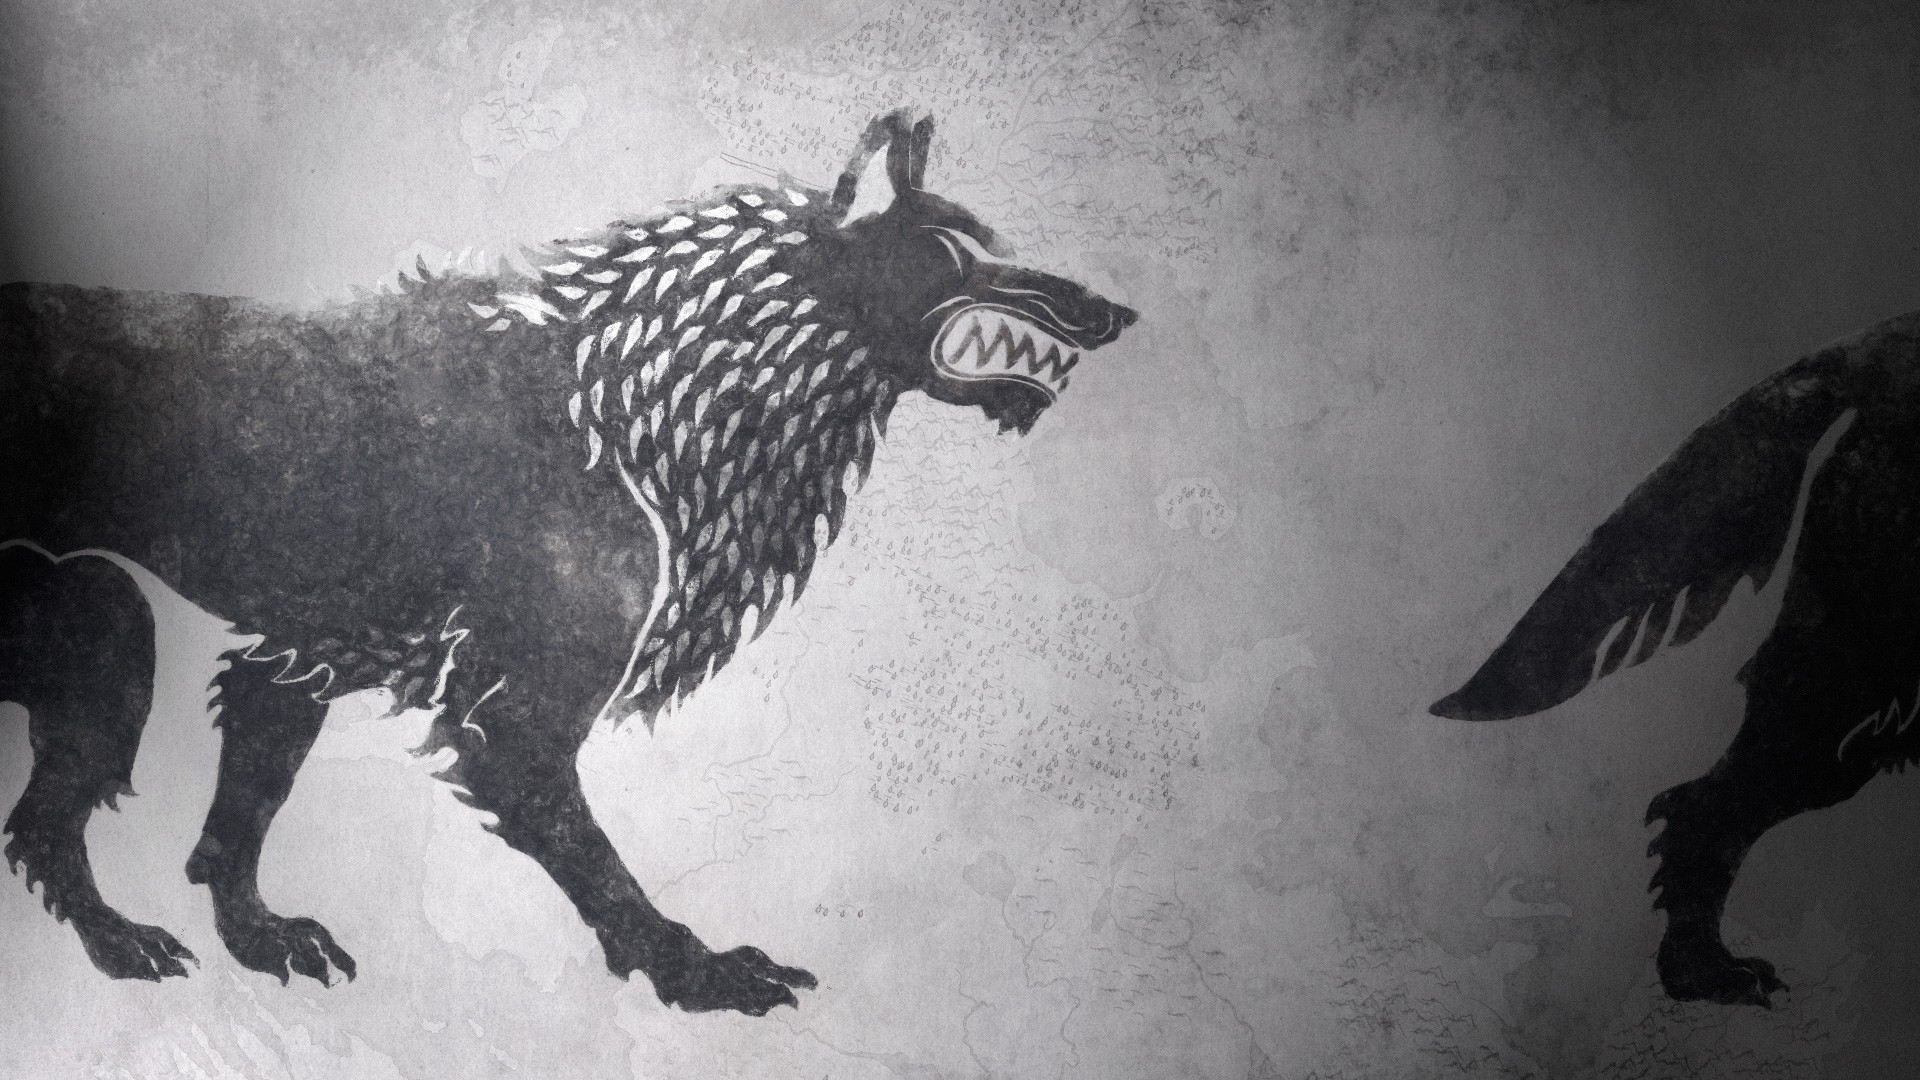 1920x1080 game of thrones sigils house stark wallpapers hd desktop and mobile  backgrounds